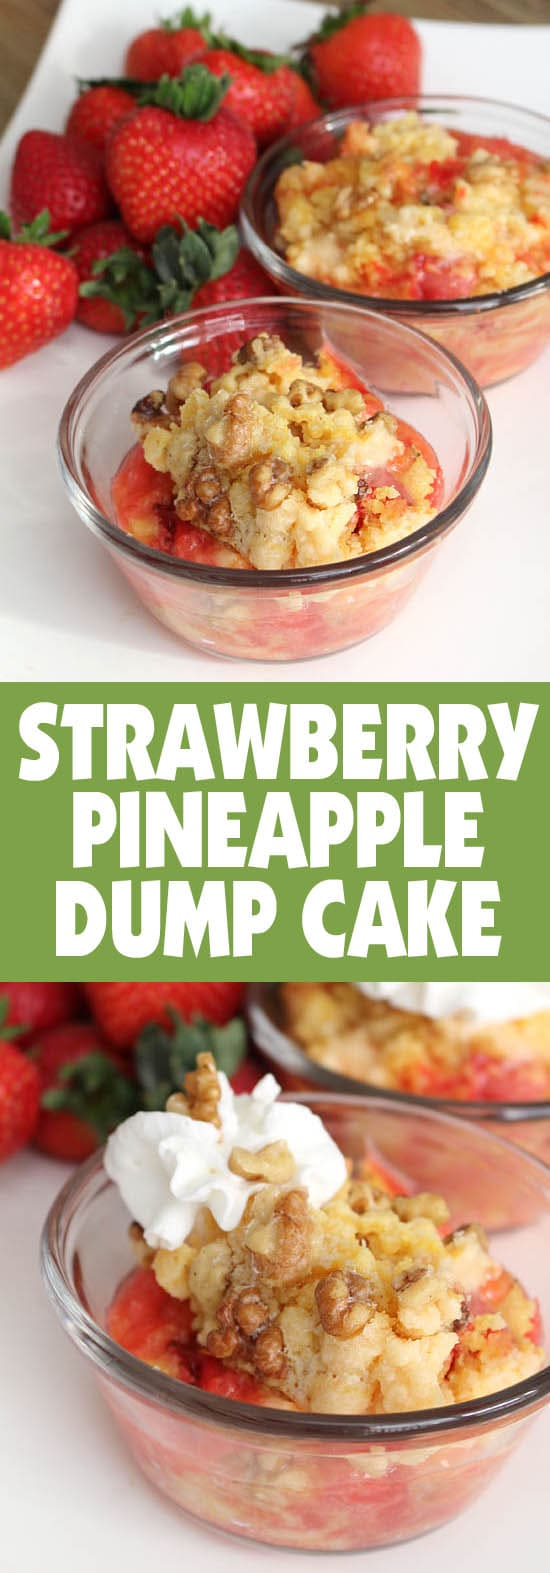 Strawberry pineapple dump cake in bowls on counter.